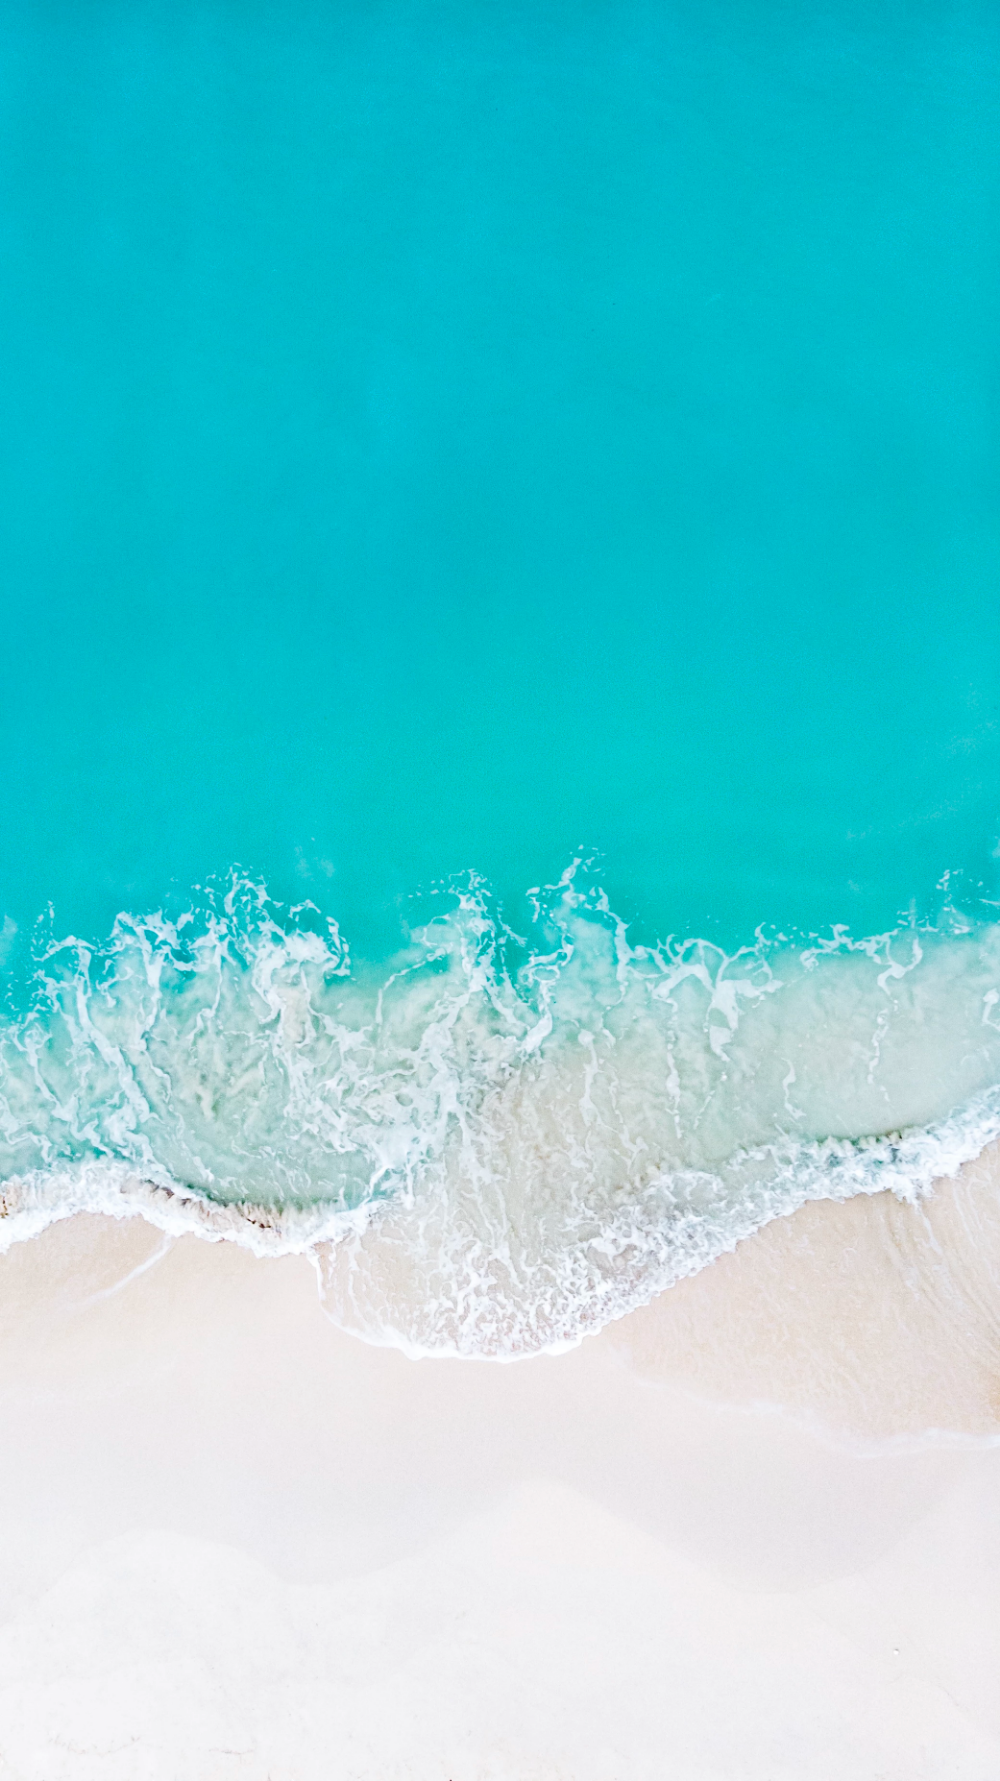 Gorgeous Overhead Beach Photo By Naail Hussain Teddscmv On Unsplash Waves Wallpaper Ocean Wallpaper Summer Backgrounds